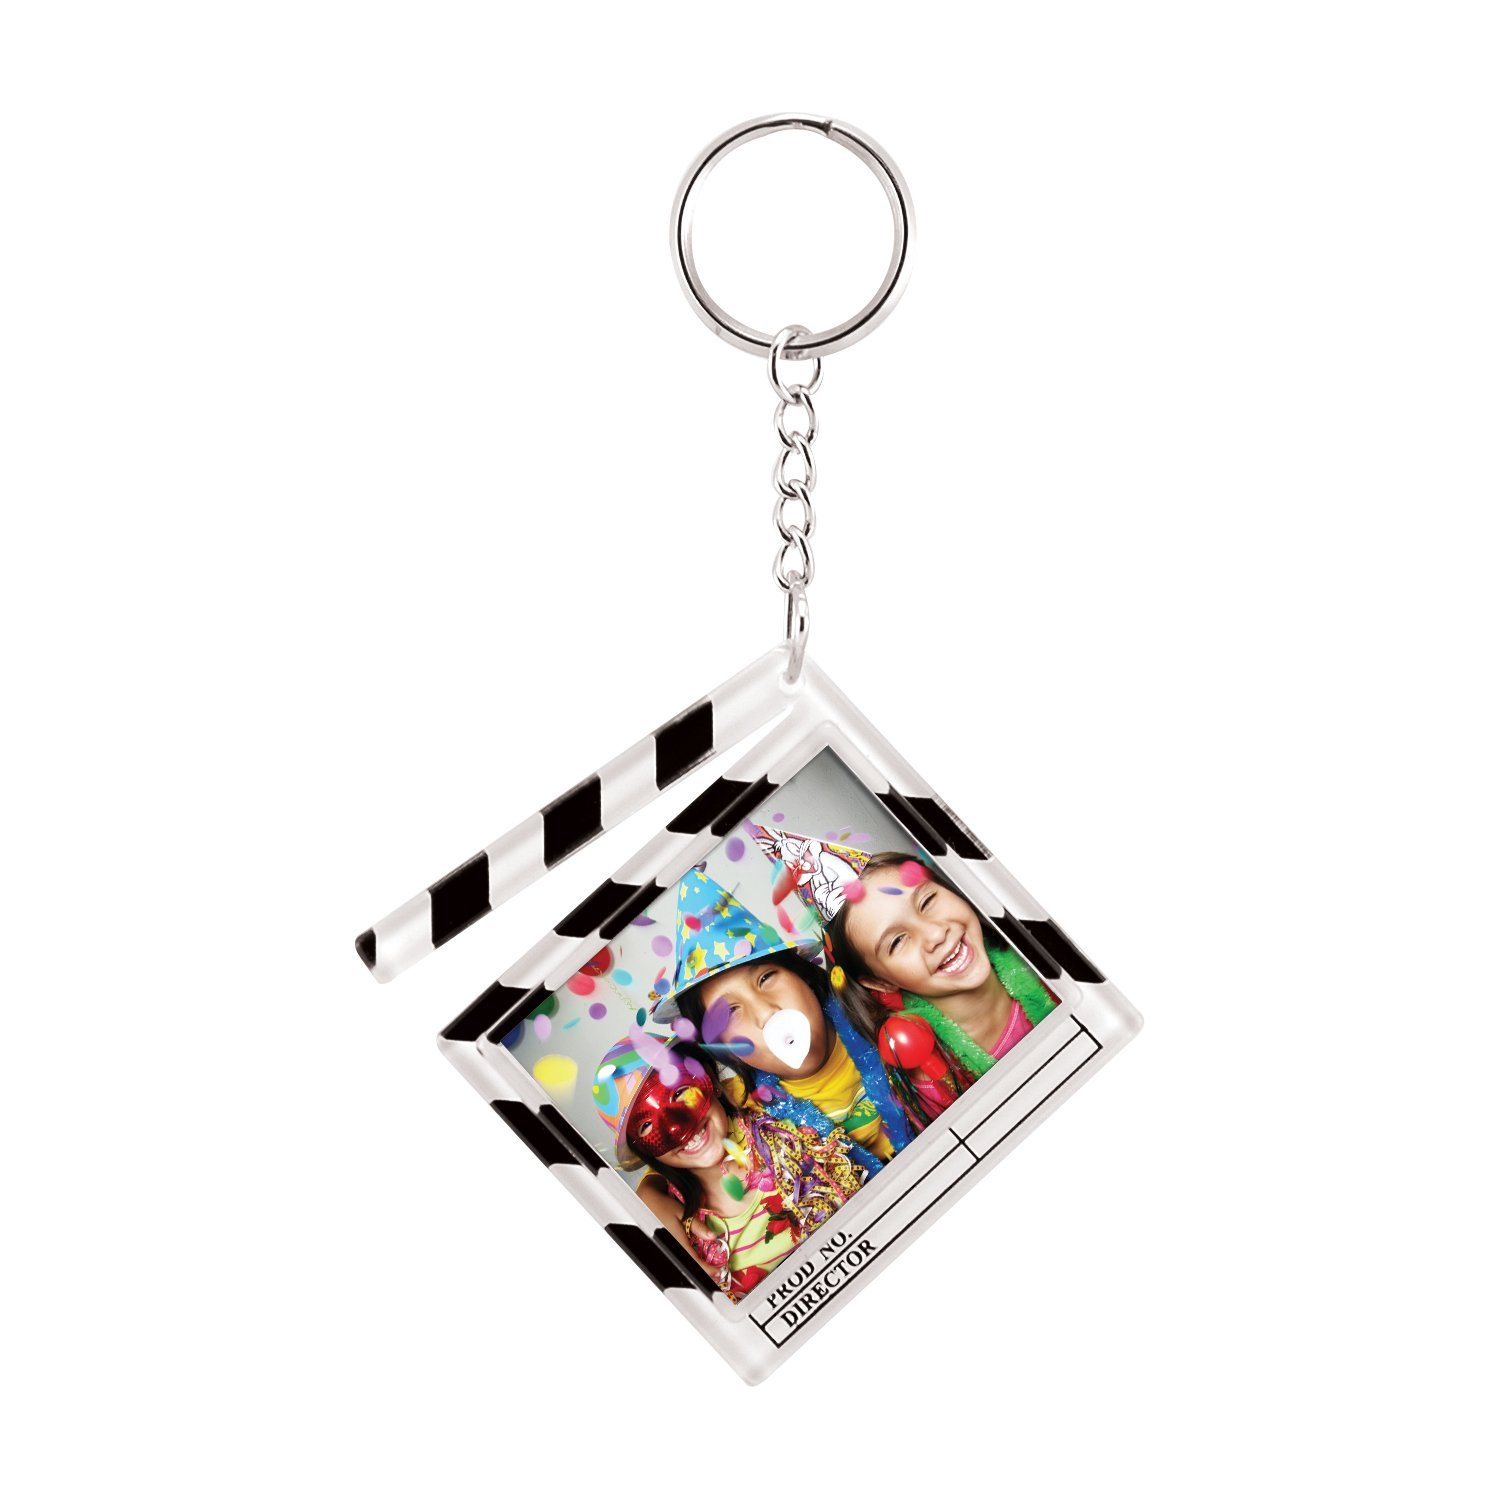 1-3/8'' x 1-3/4'' Clapboard Photo Keychains - Pack of 144 by Neil Enterprises